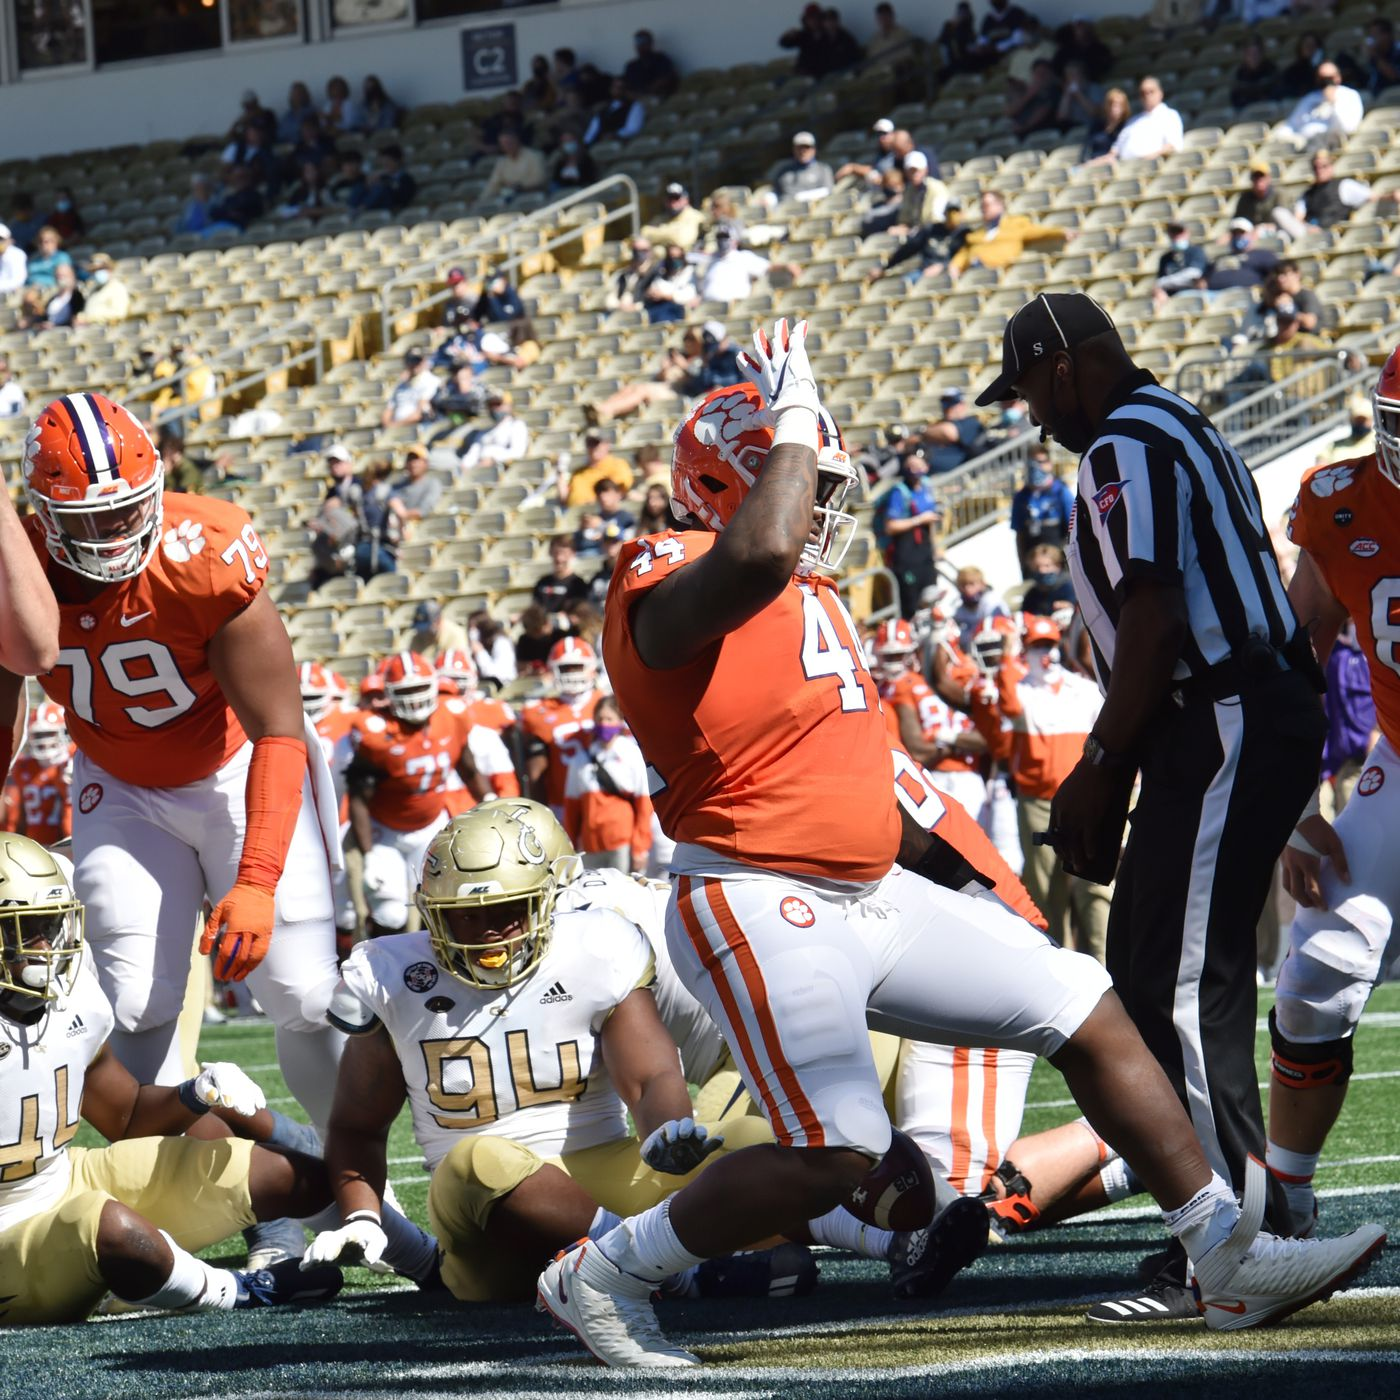 Clemson Vs Georgia Tech Tigers Destroy The Yellow Jackets Shakin The Southland